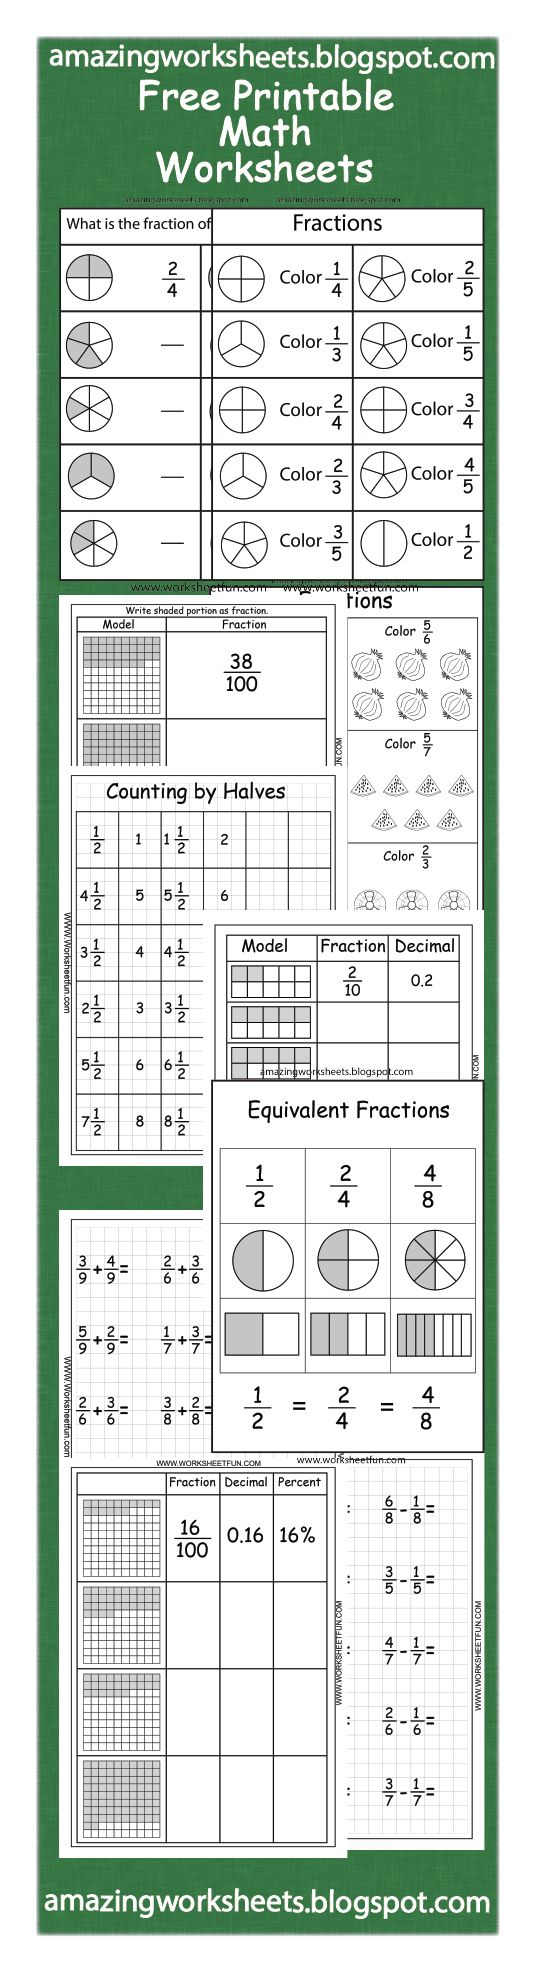 Free Printable #Fractions Worksheets #math